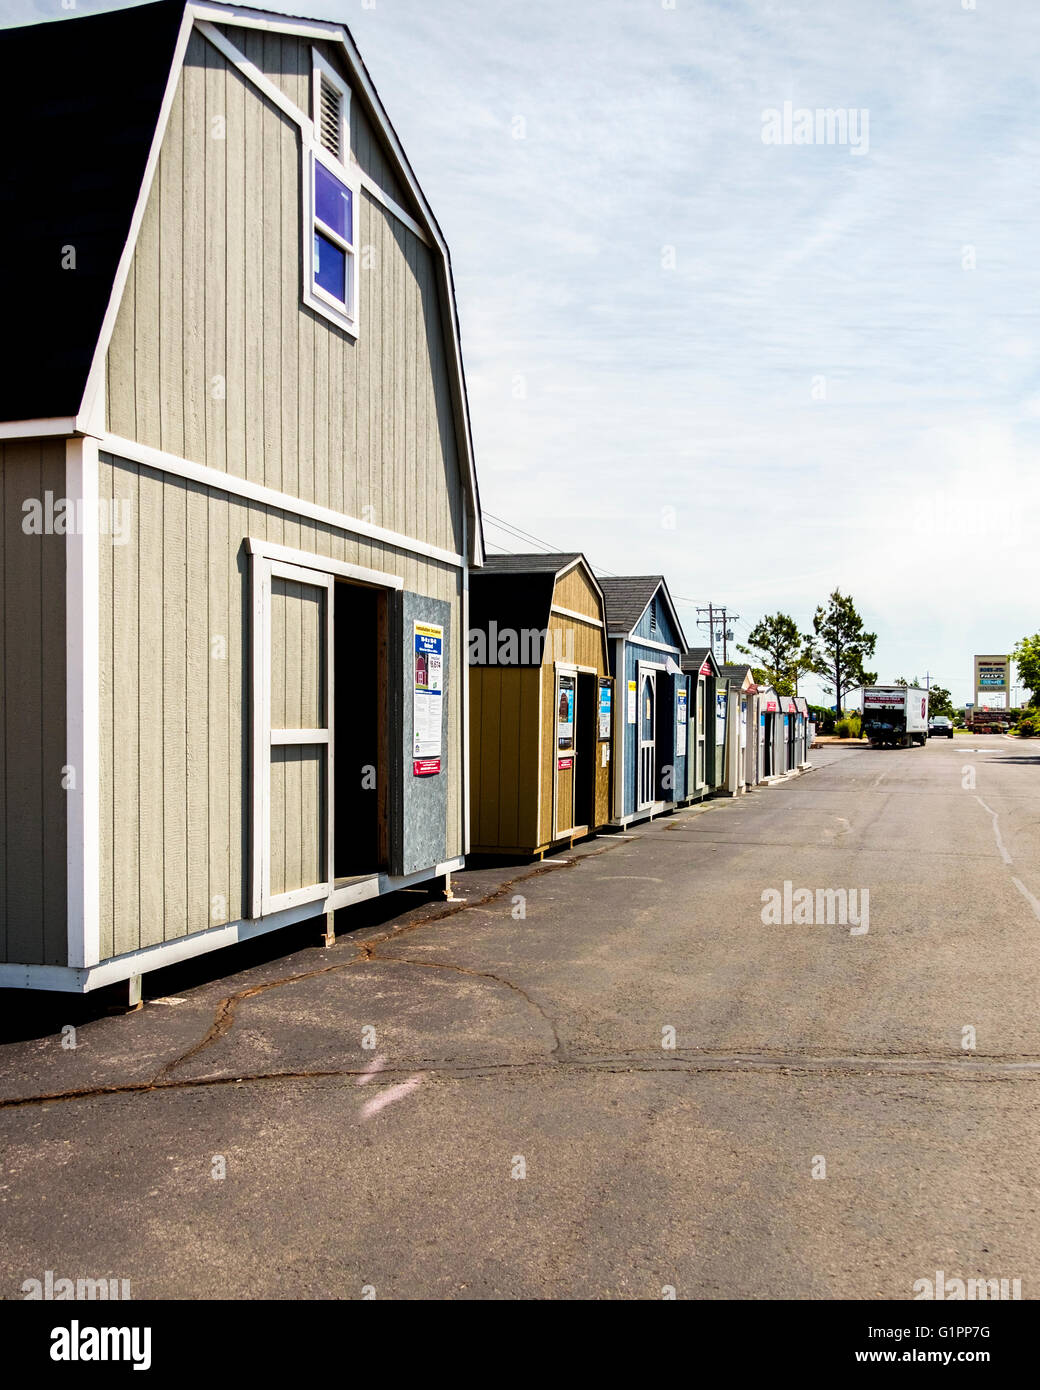 Portable storage sheds for sale in the parking lot of a ...